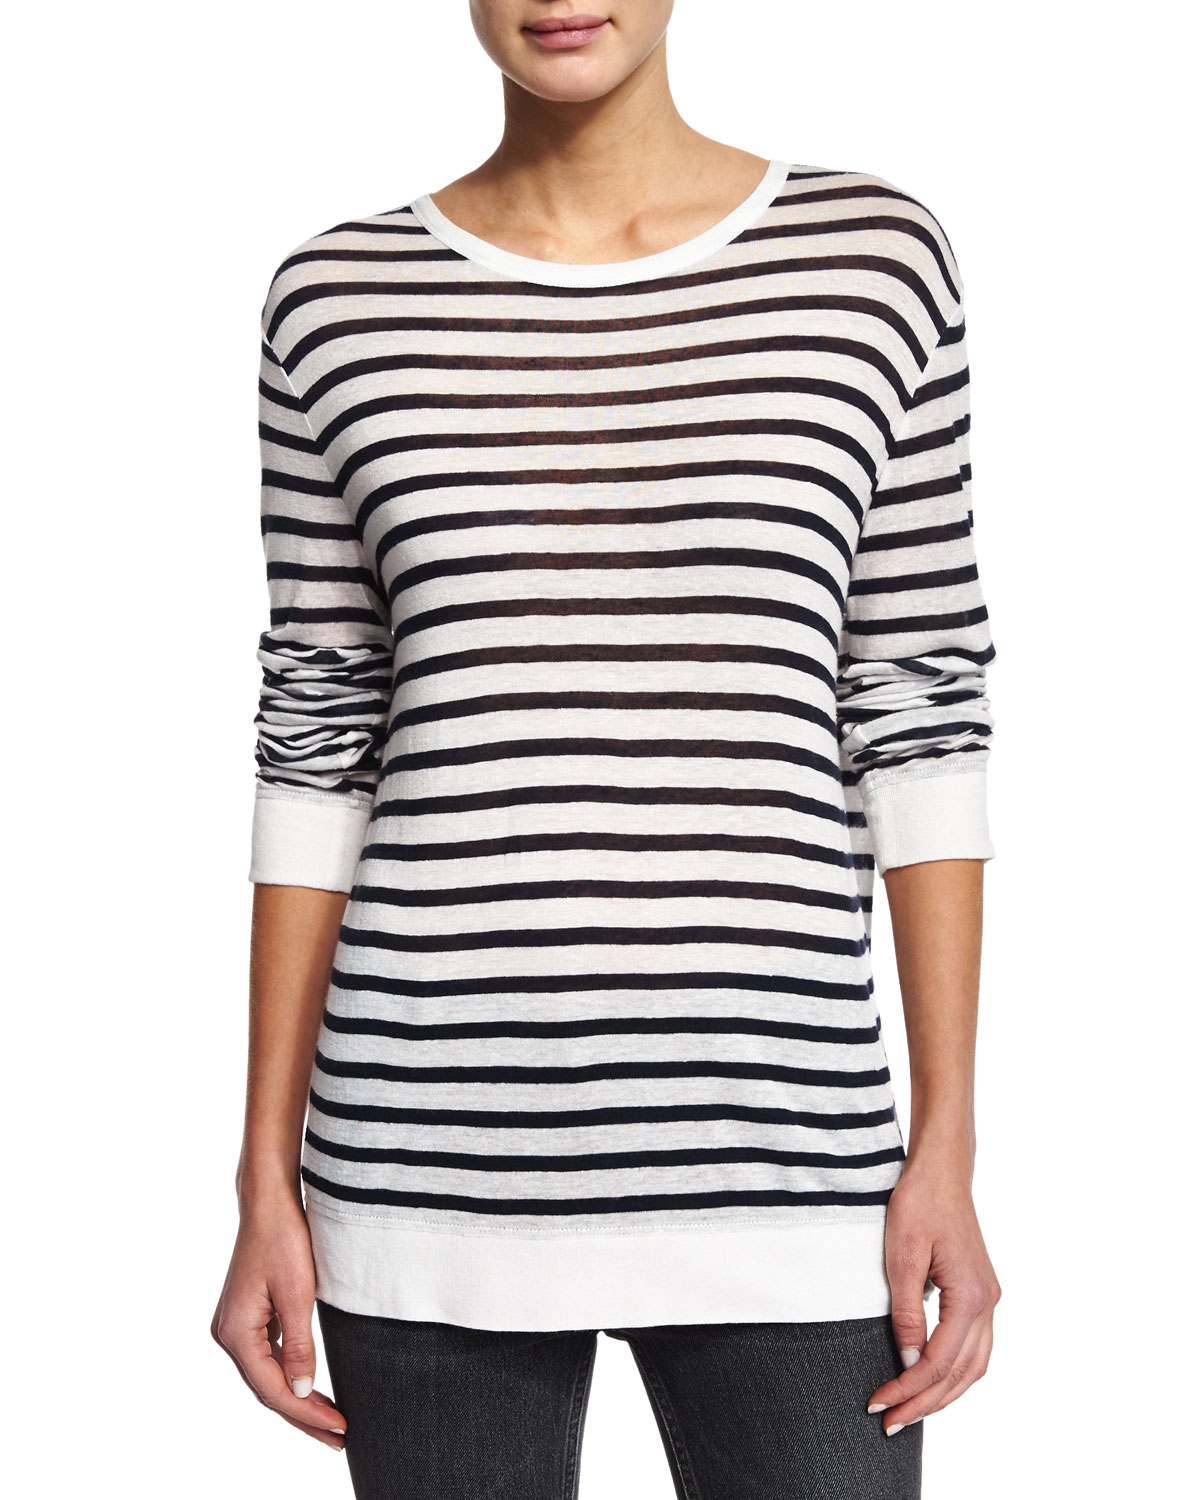 T by Alexander Wang Striped Linen-Blend Tee, Ink/Ivory, Size: S, Ink And Ivory